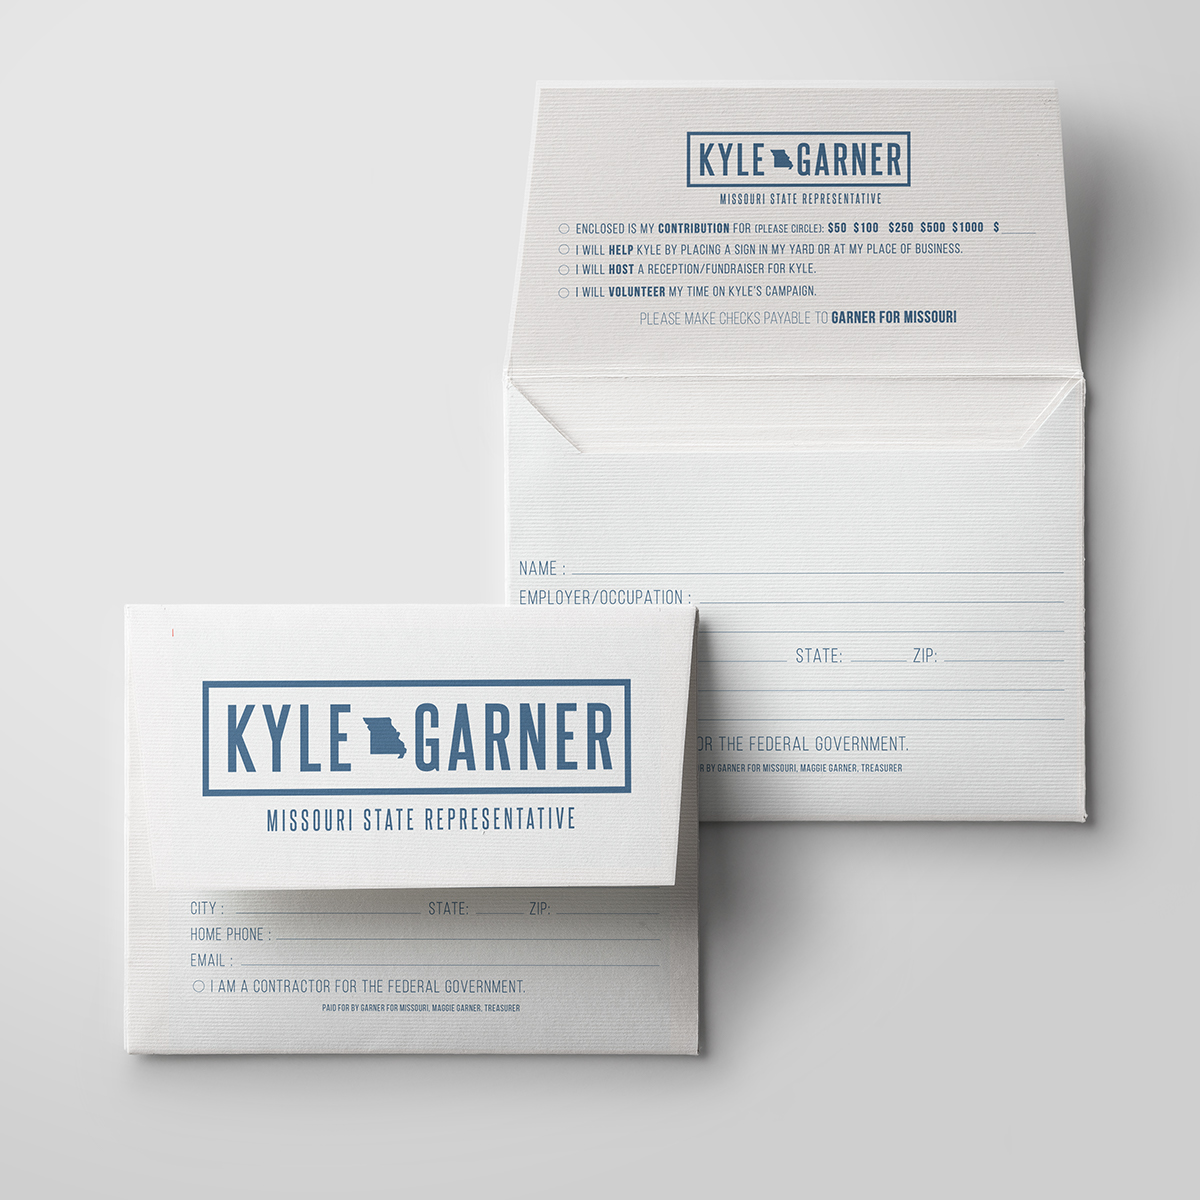 Mike Watts Consulting: Kyle Garner Campaign on Behance